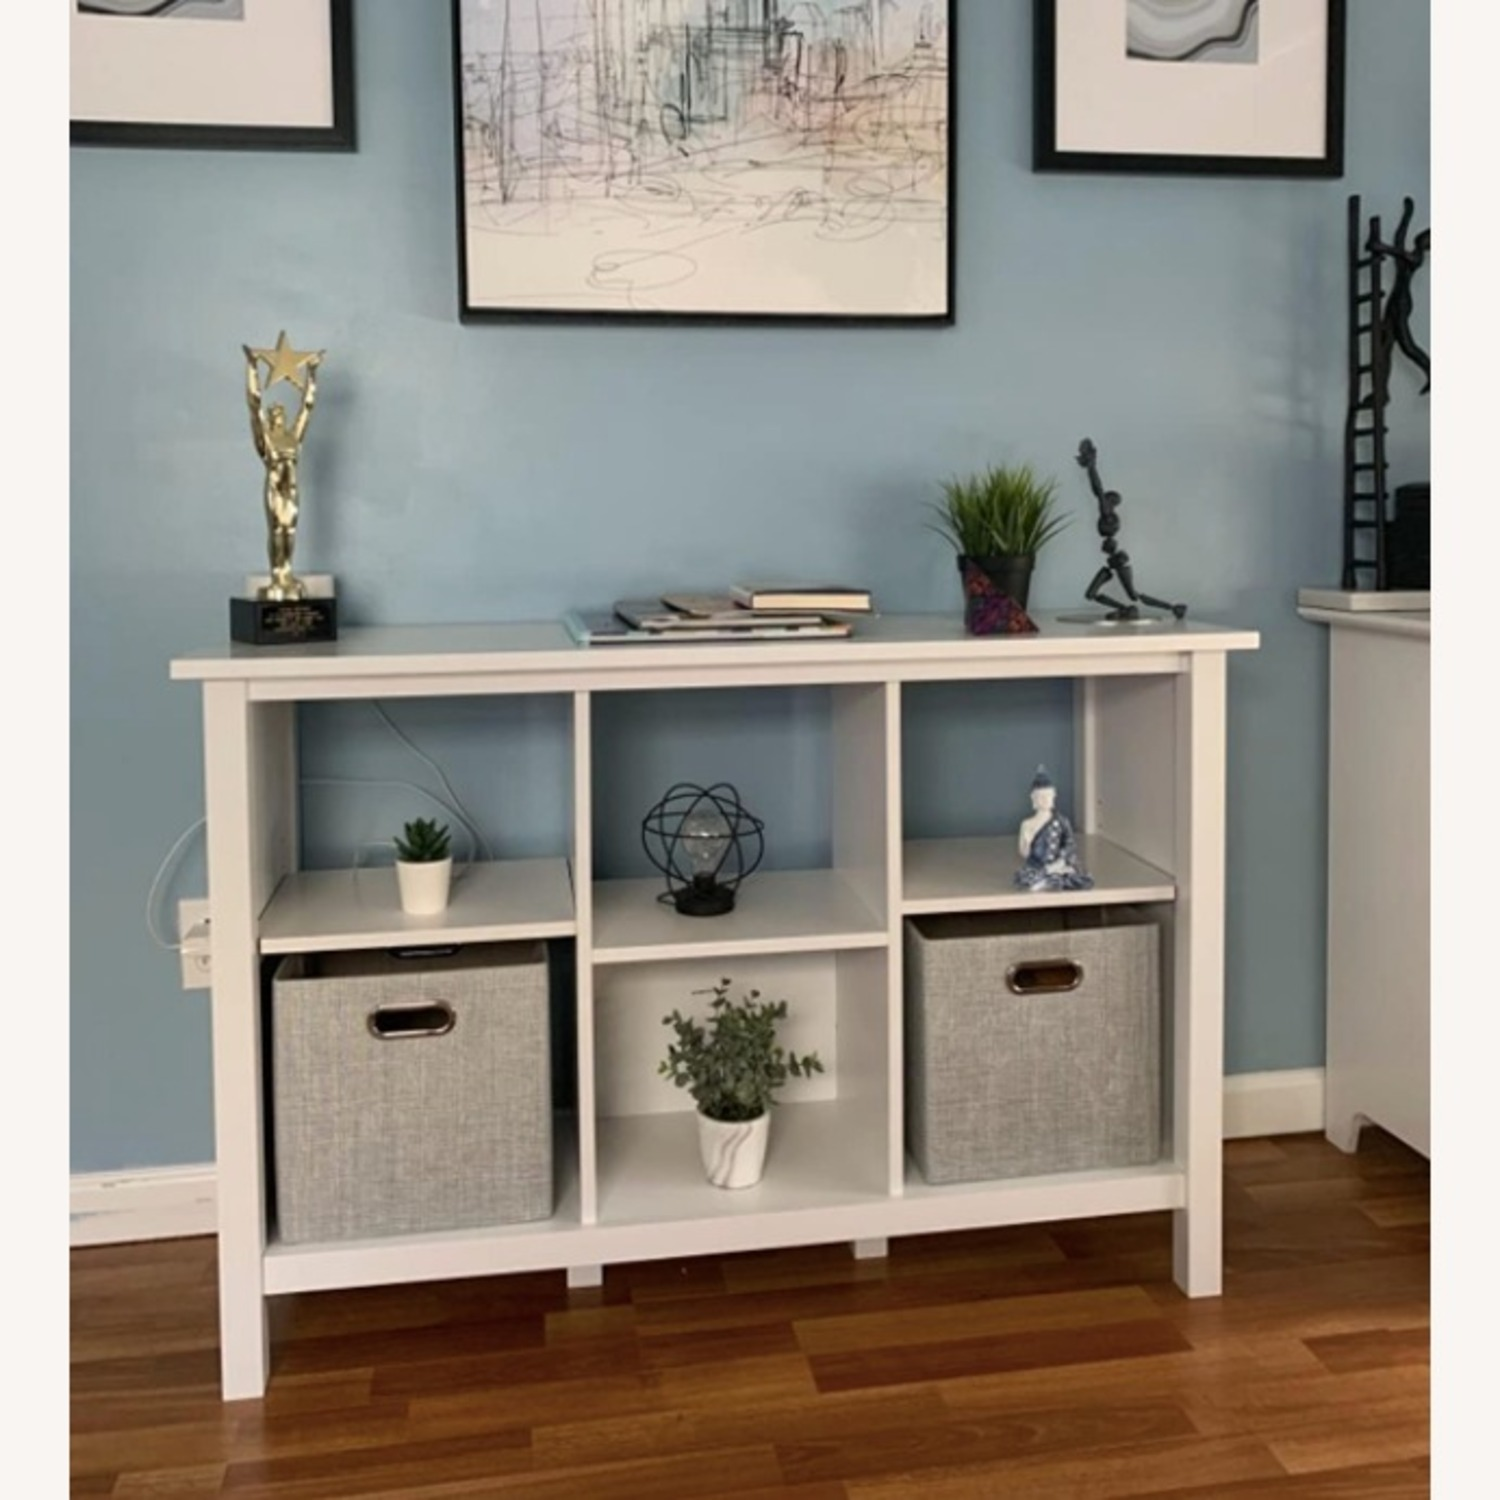 Modern Contemporary 6 Shelves White Wood Bookcase - image-3